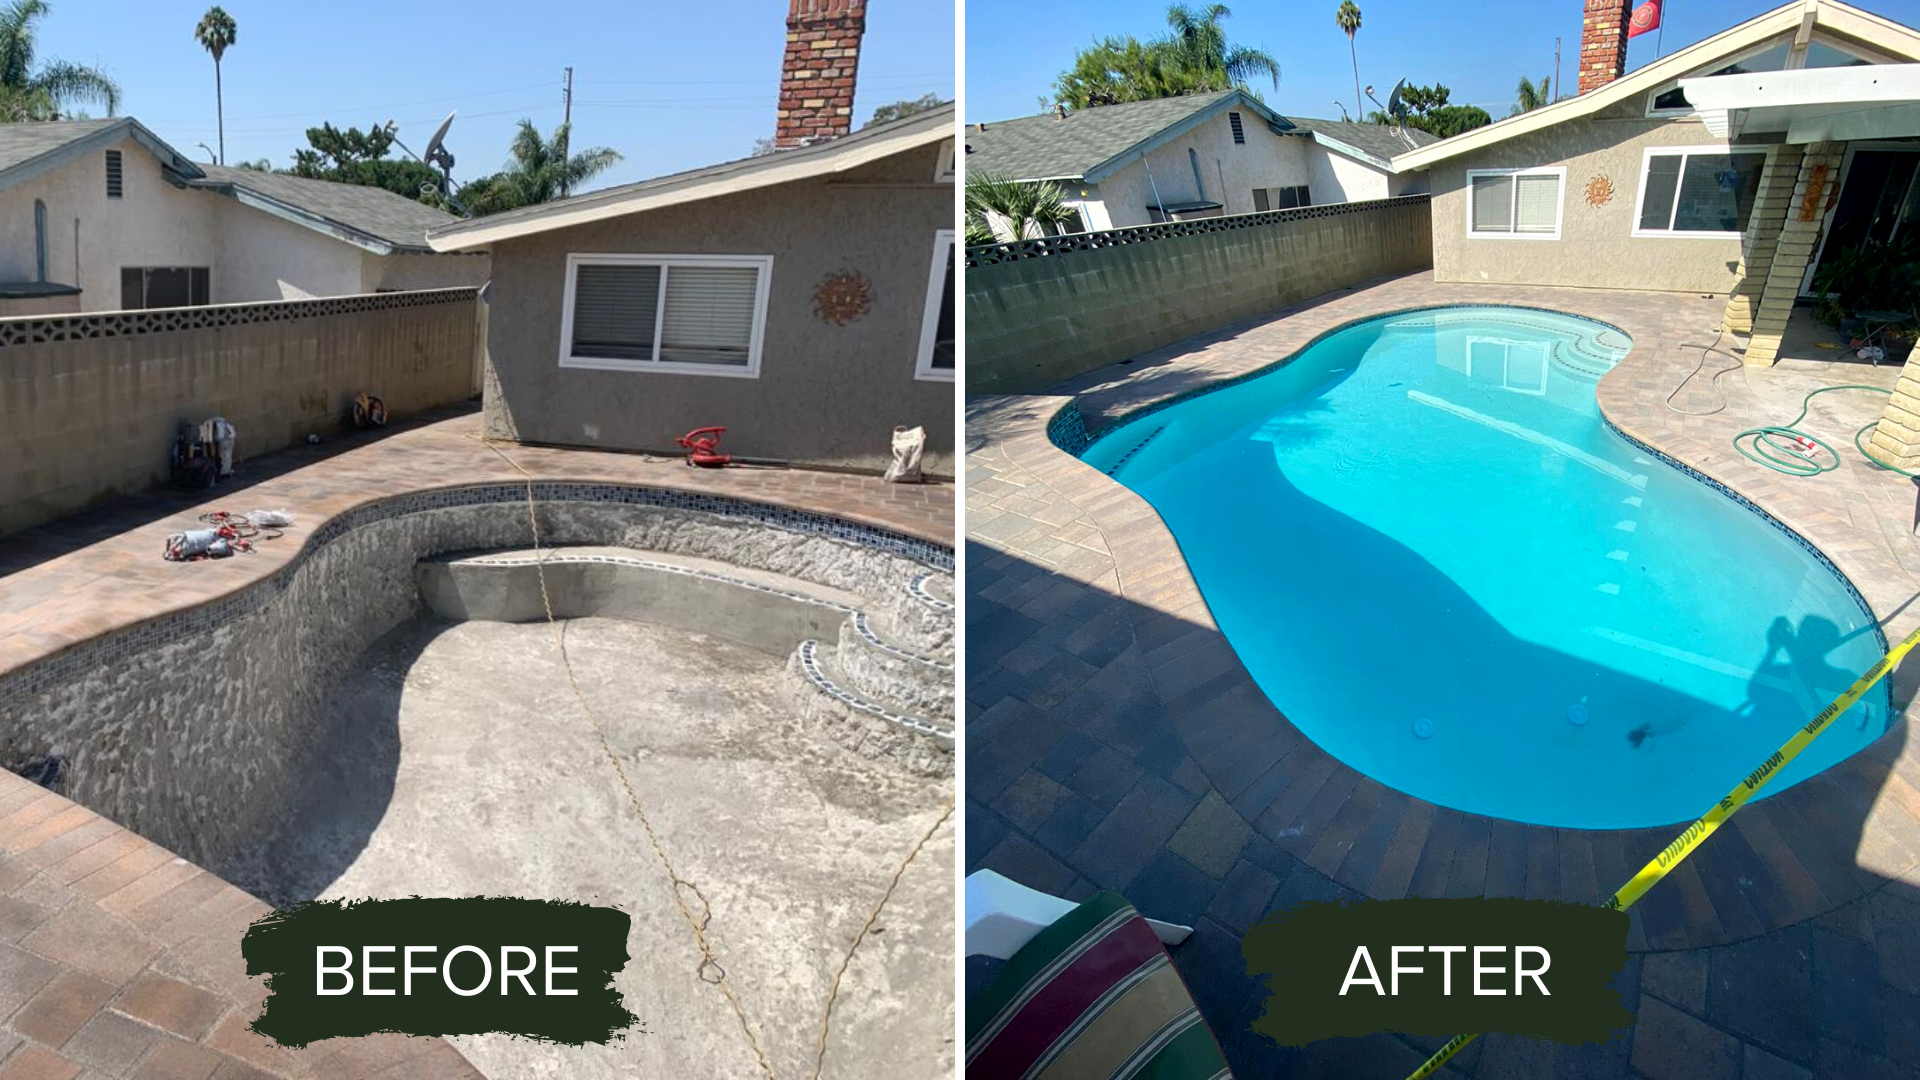 BEFORE AND AFTER POOL RENOVATION